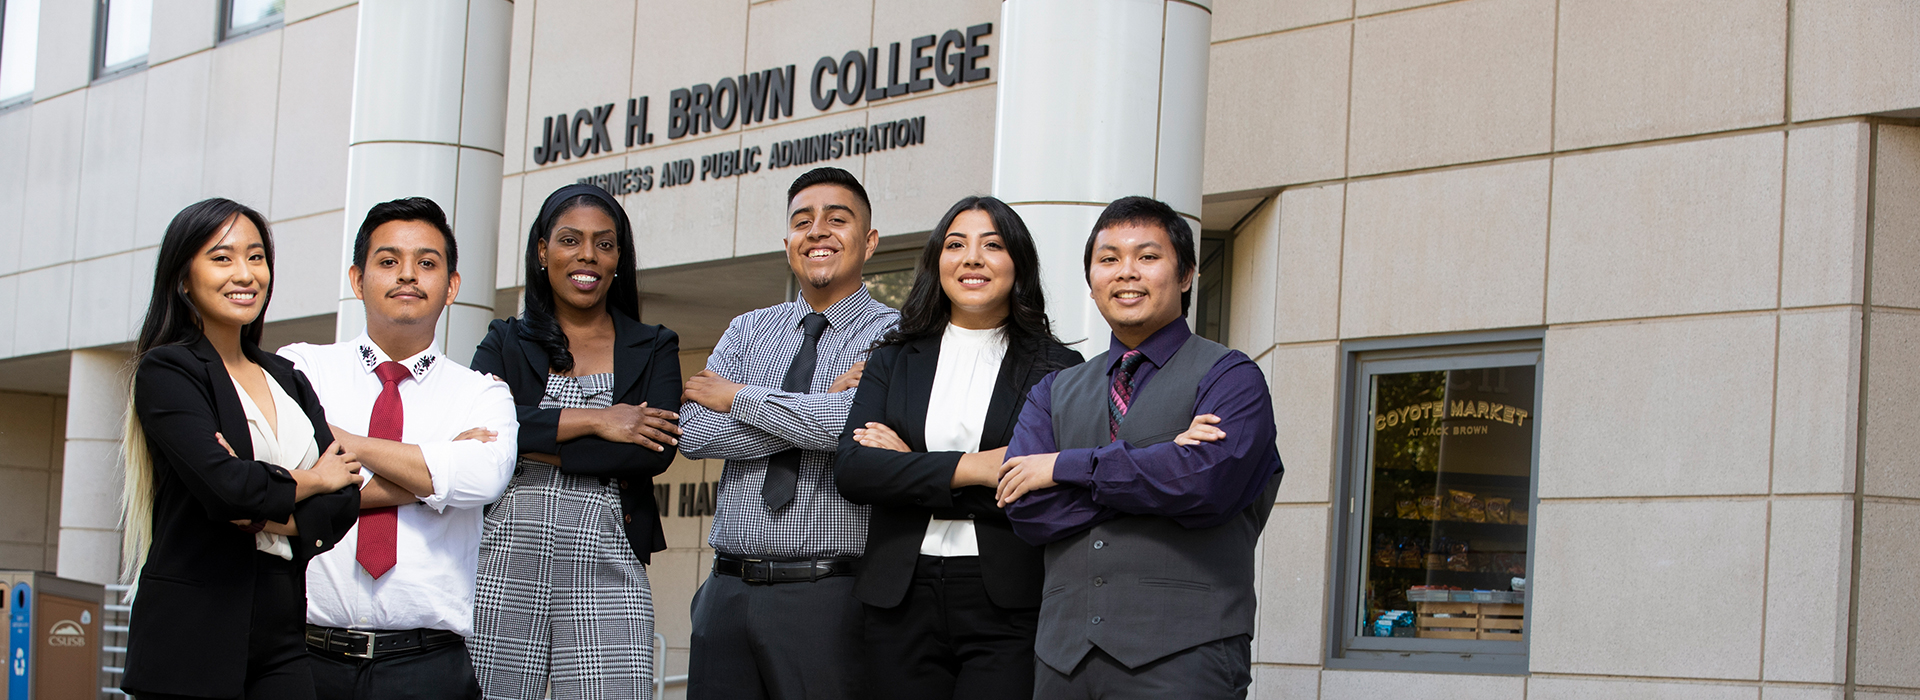 Recent rankings continue to show CSUSB Jack H. Brown College is one the best in the nation